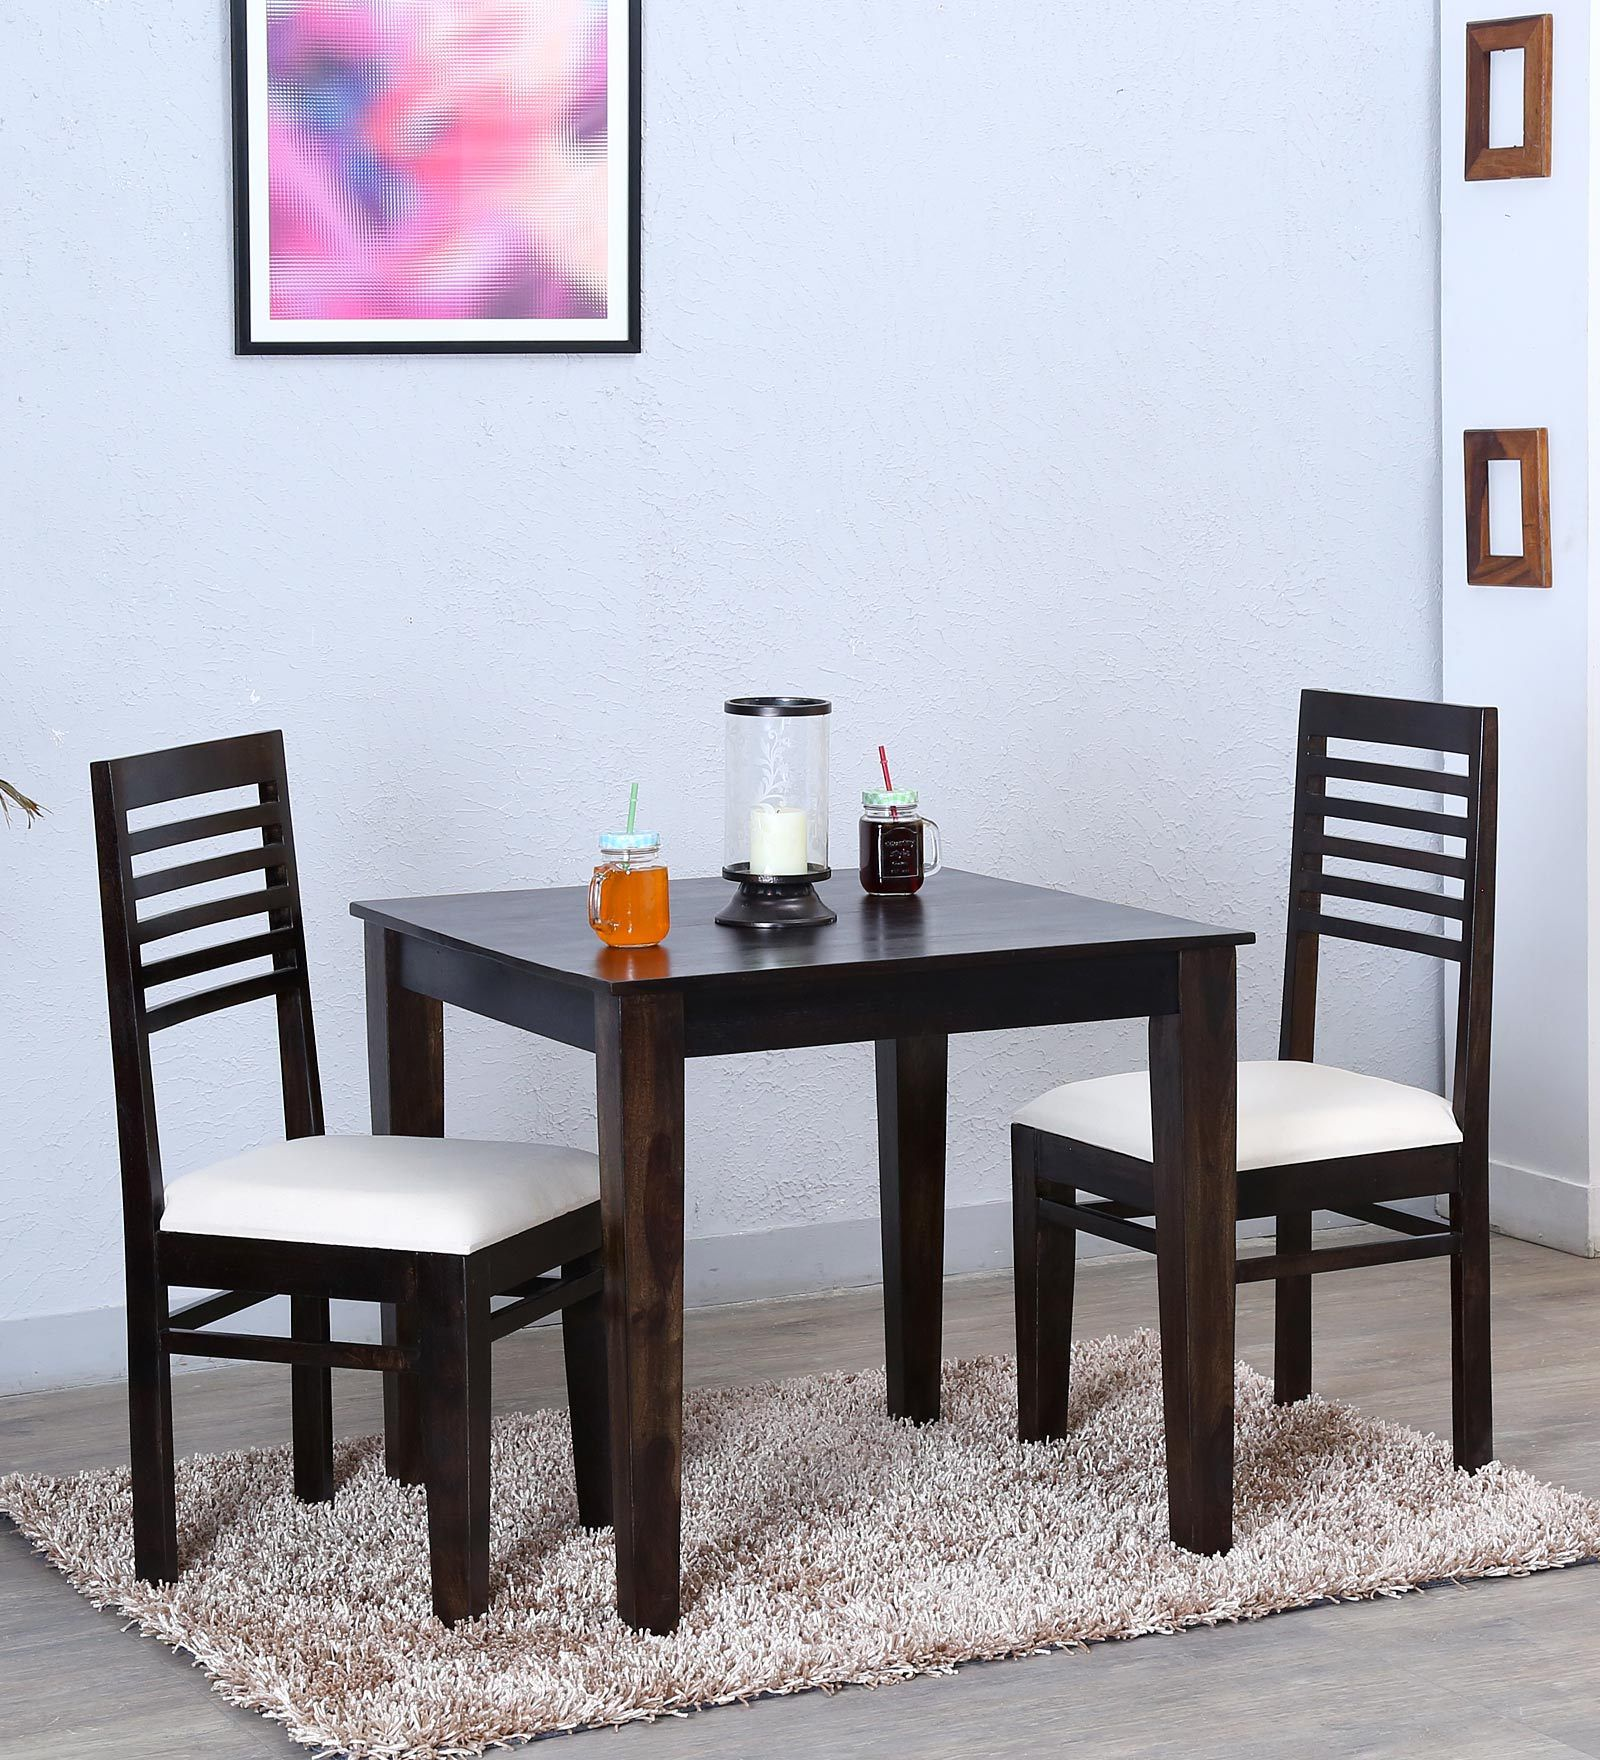 Ethnic India Art 2 Seater Dining Set Table In Sheesham Wood Teak